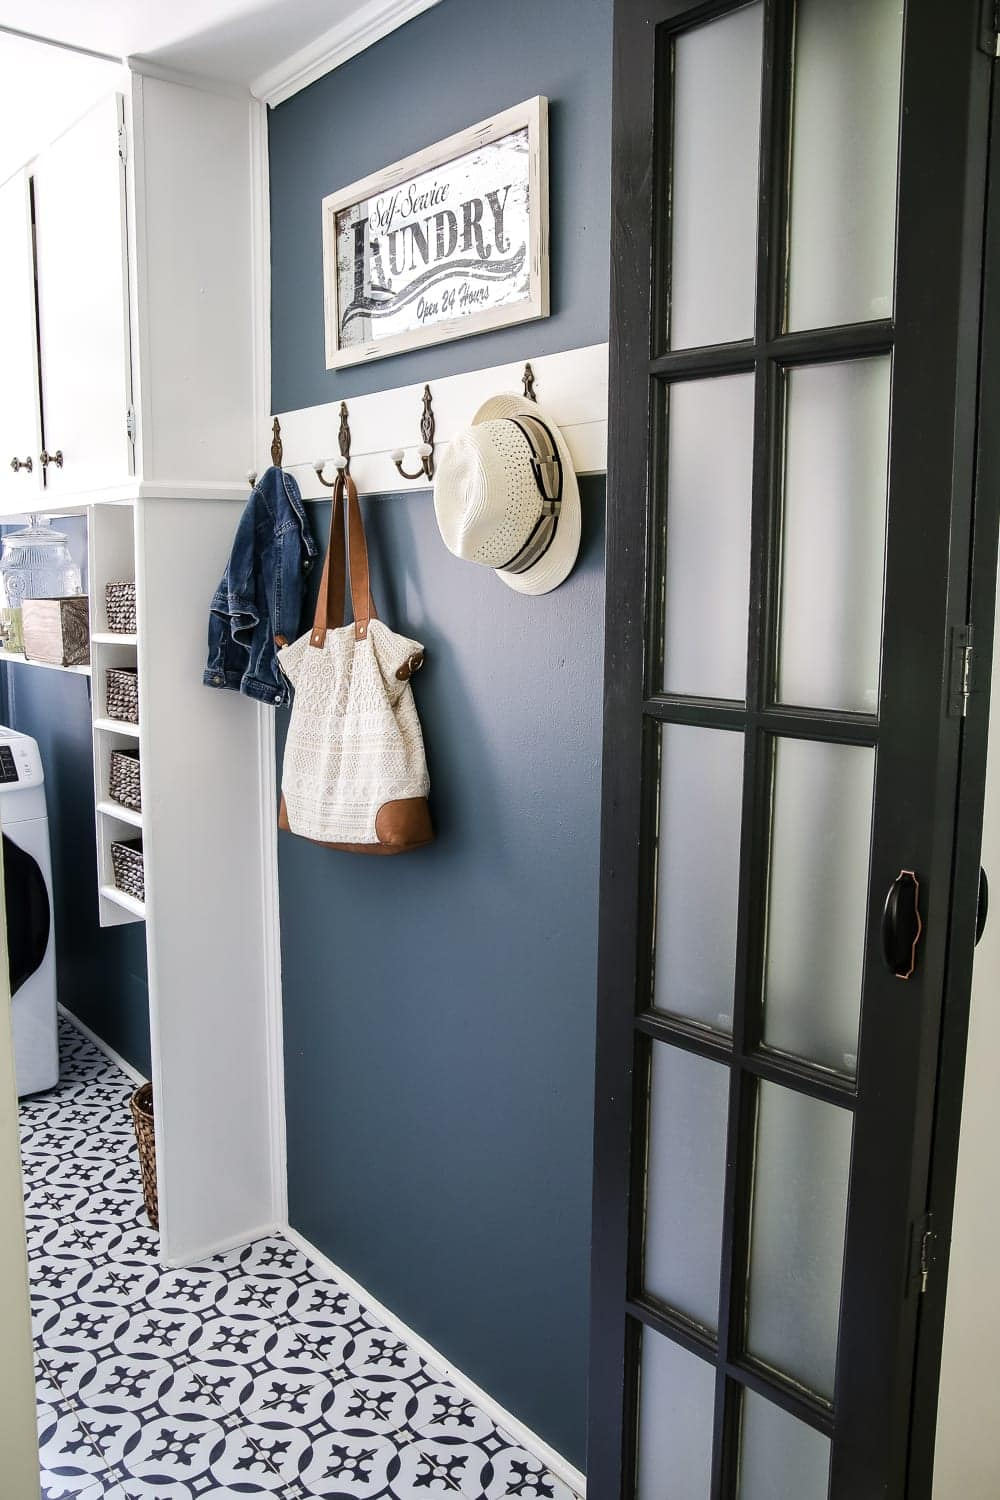 Hooks in a laundry room mudroom